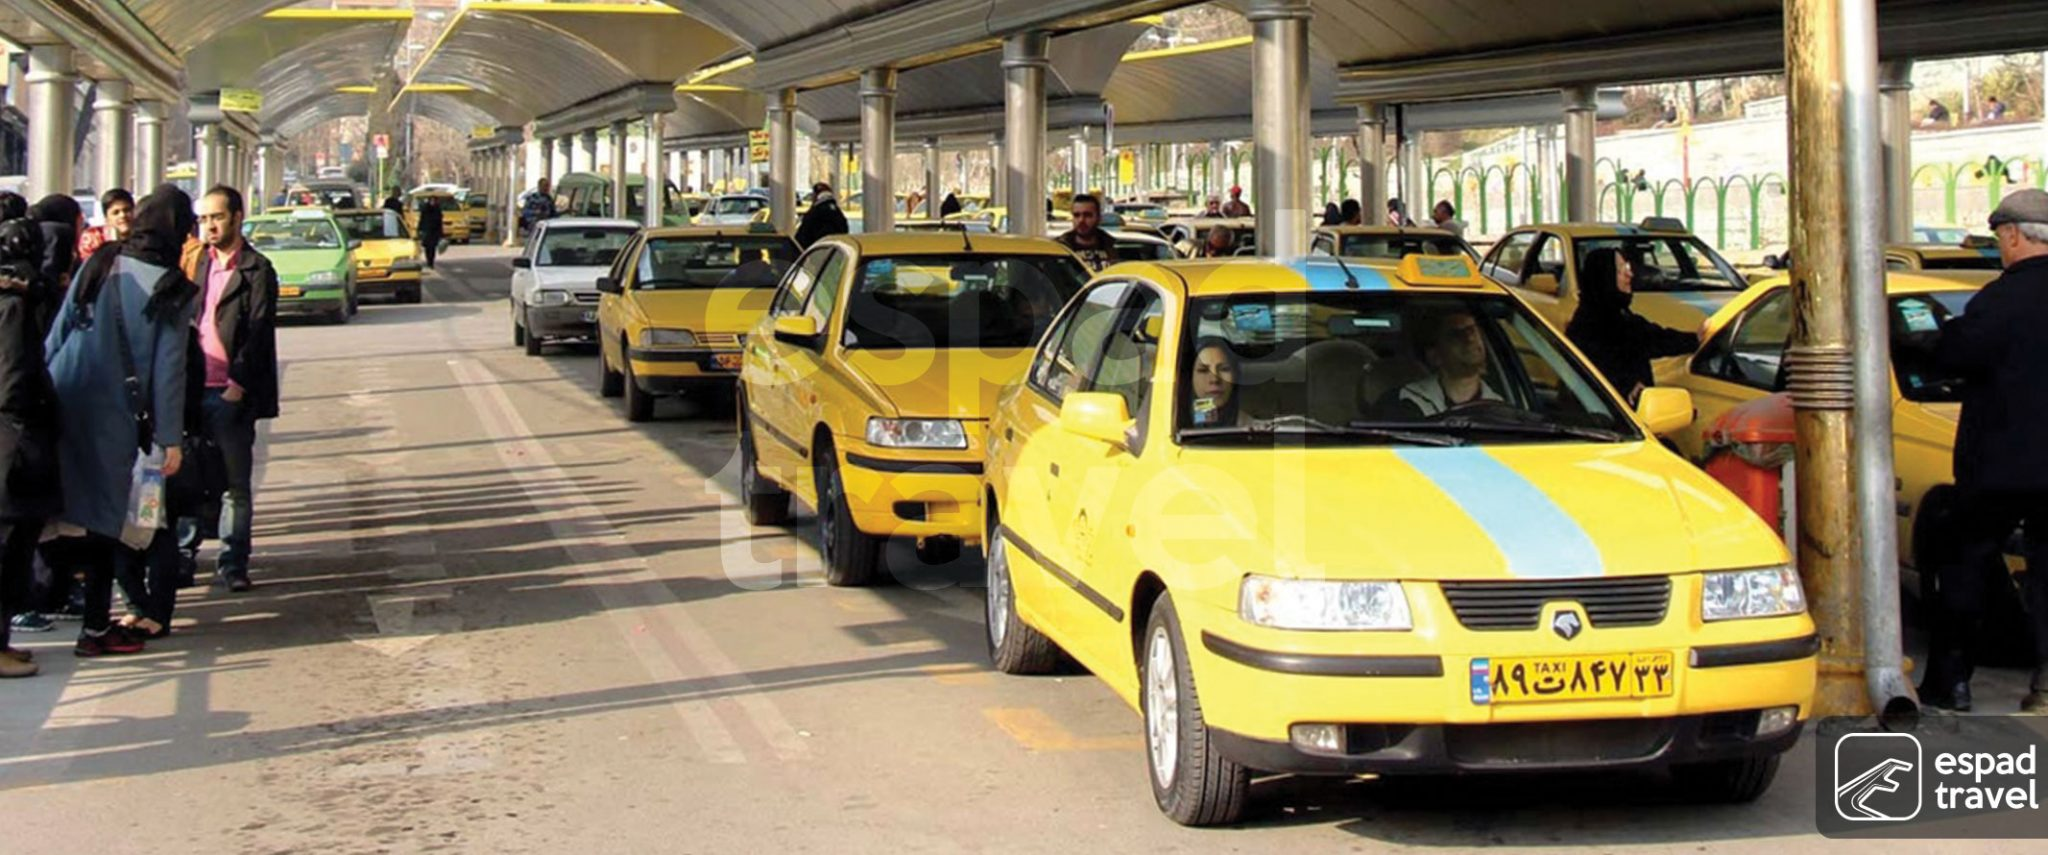 taxis in iran